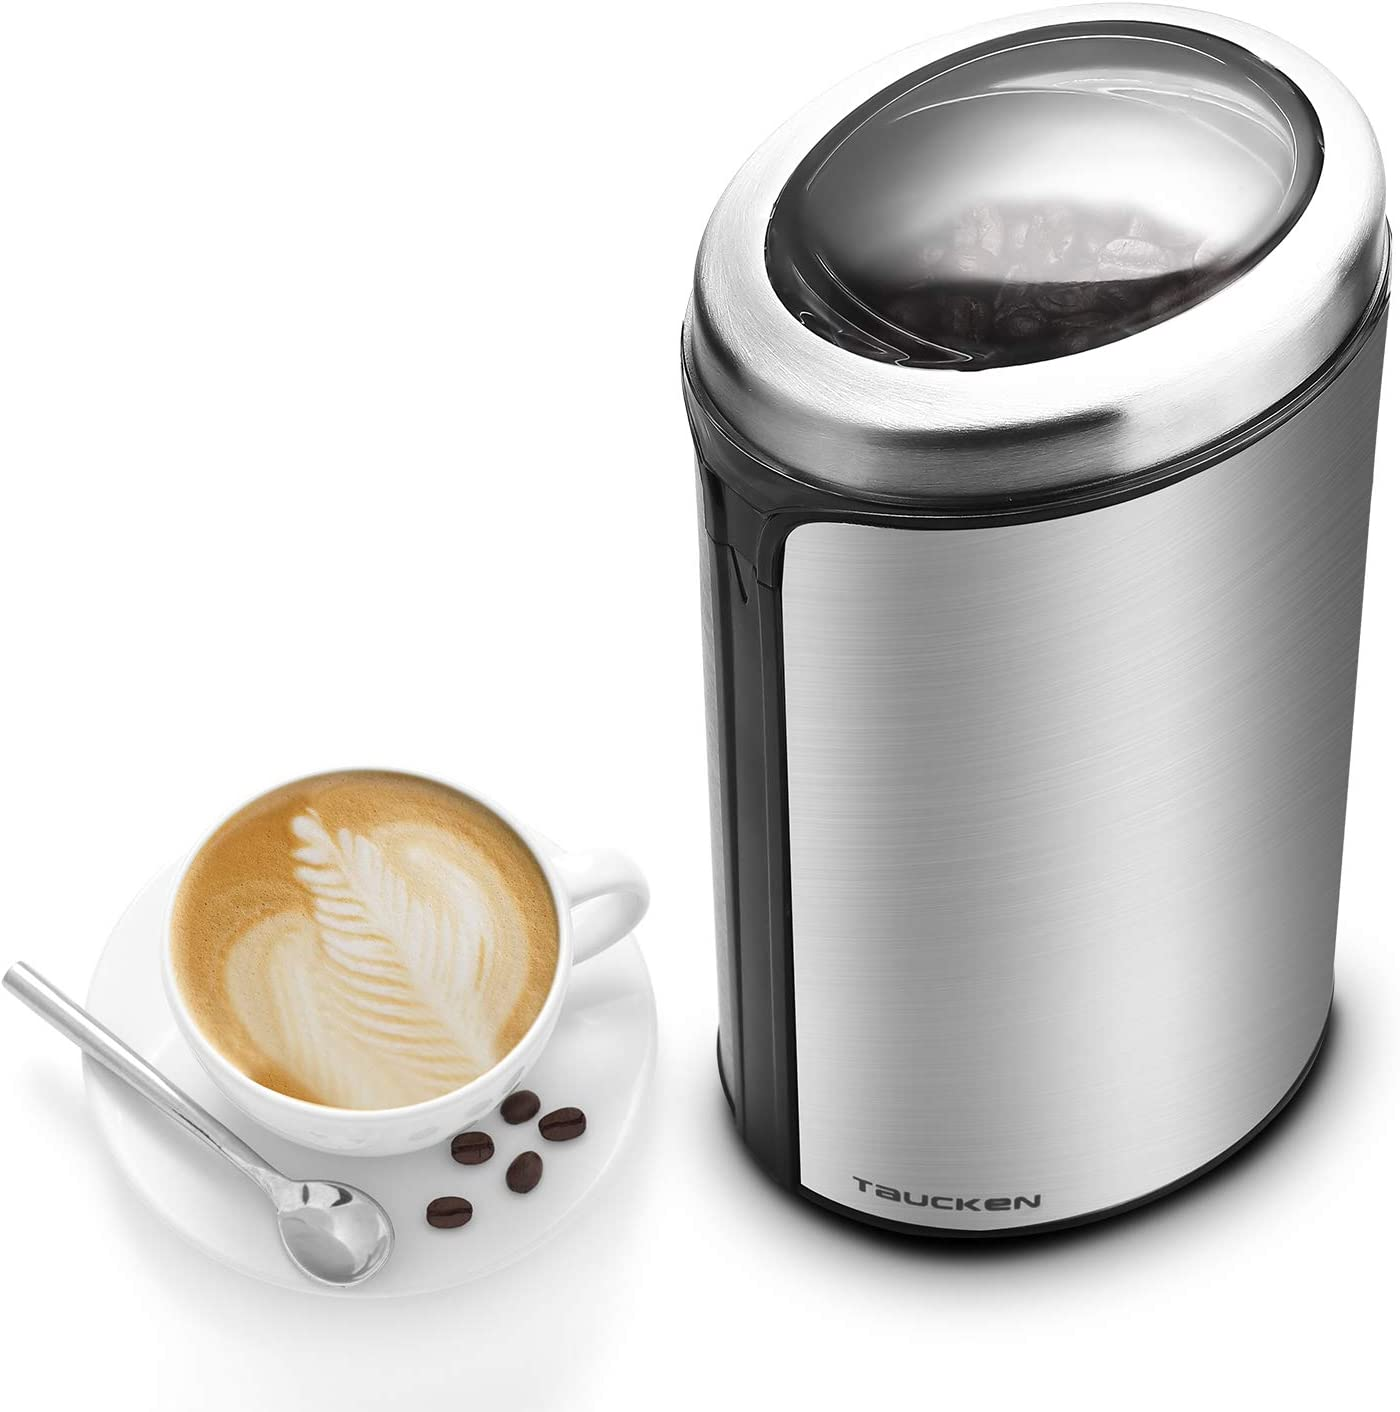 Coffee Grinder – Taucken Ultimate Electric Coffee Grinder, Coffee Bean Grinder Stainless Steel Blade Coffee Grinding Coffee Beans. Durable Portable Stainless Steel Blades Grinder